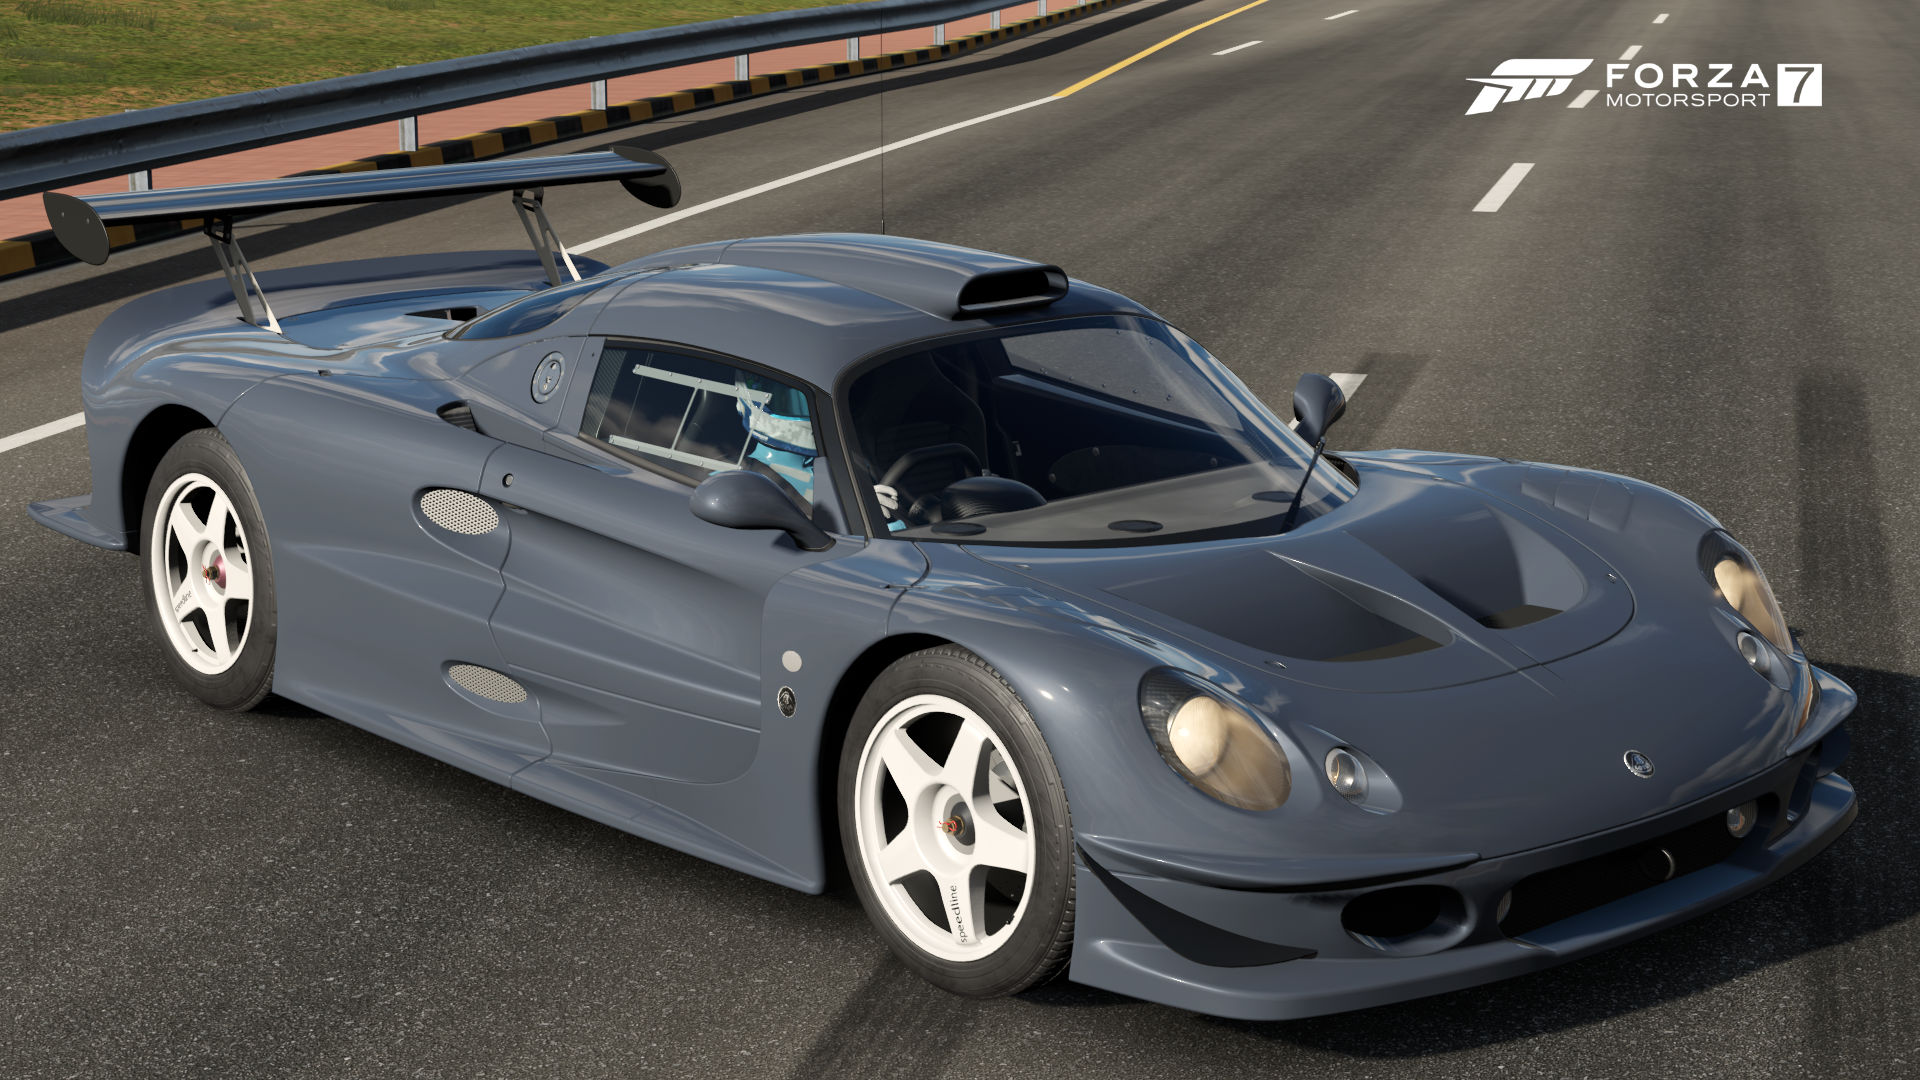 Lotus Elise GT1 | Forza Motorsport Wiki | FANDOM powered by Wikia